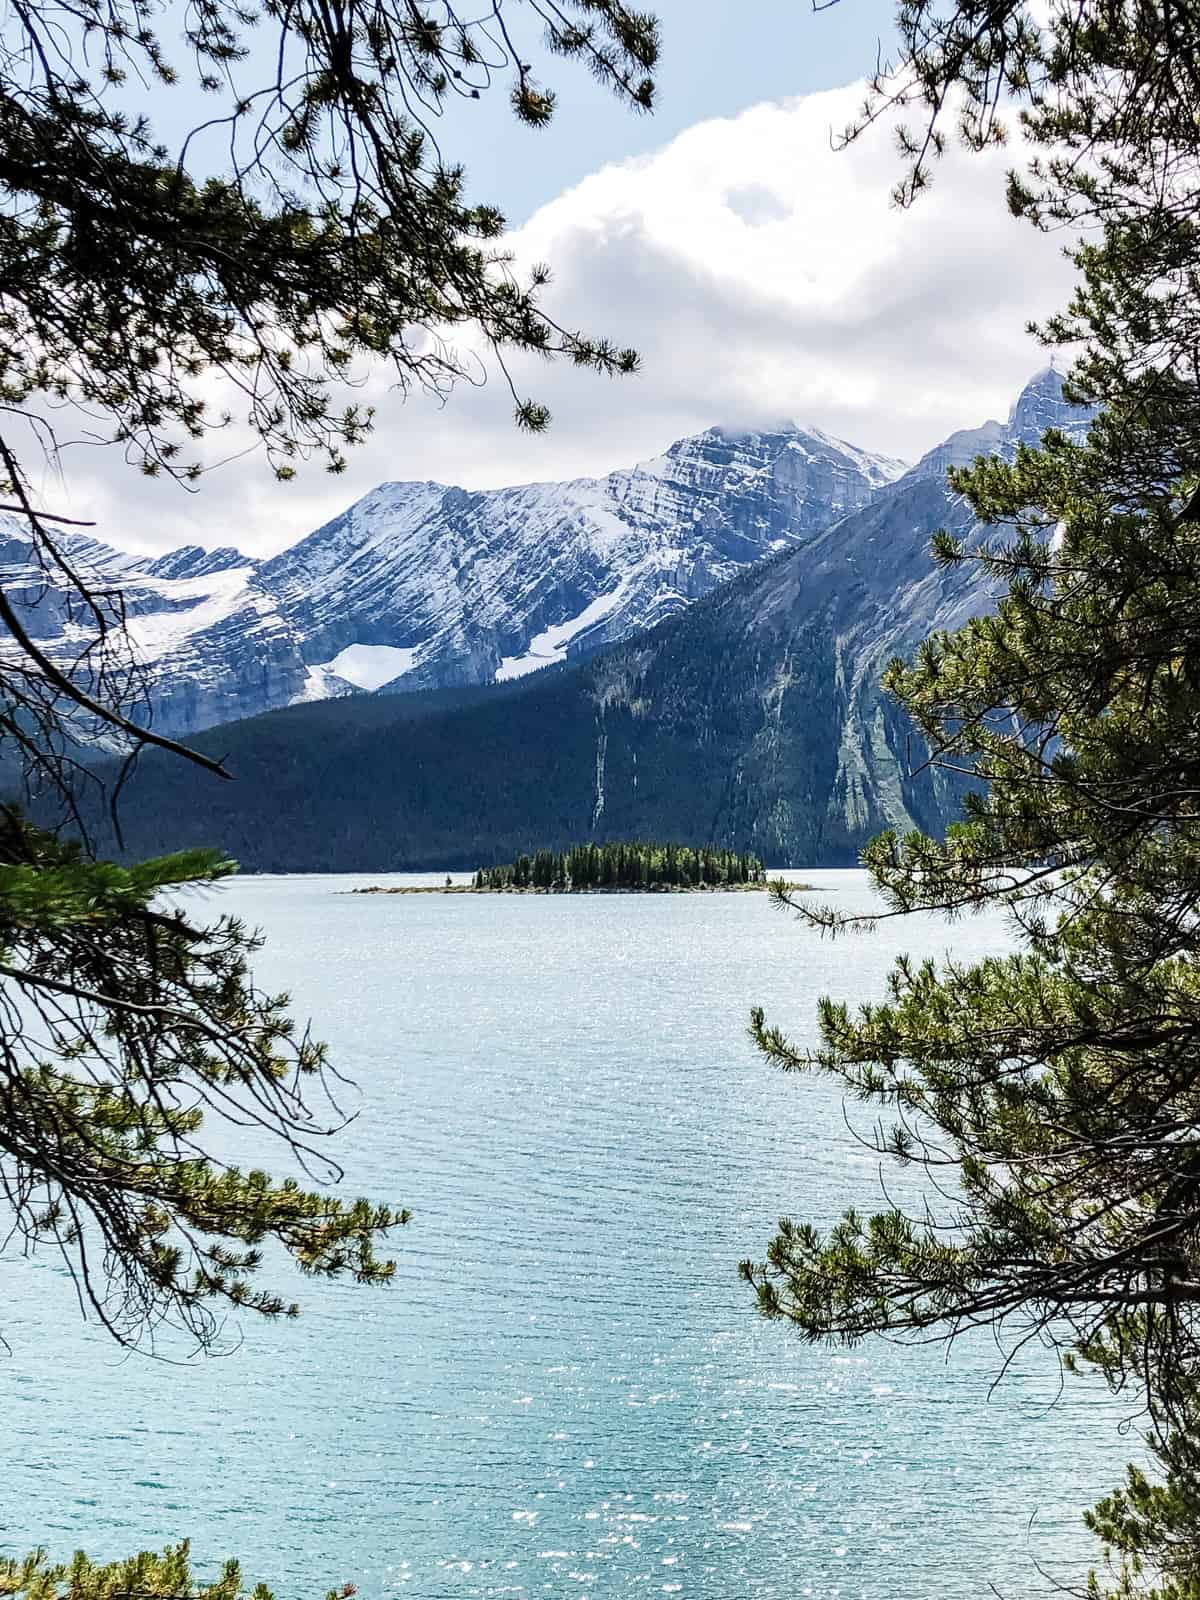 Hiking Upper Kananaskis Lake